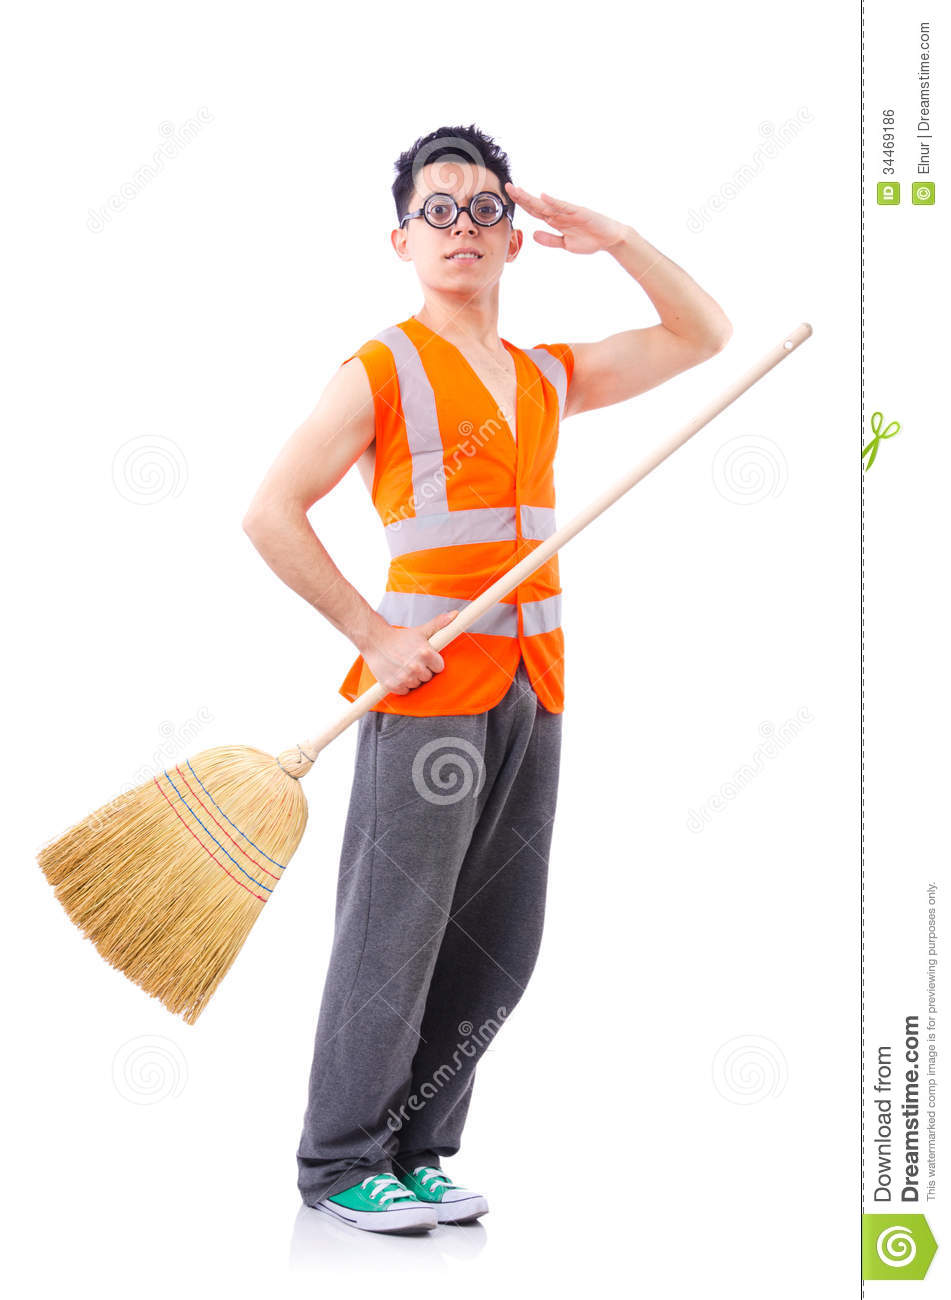 Funny Janitor Stock Image Dust Occupation